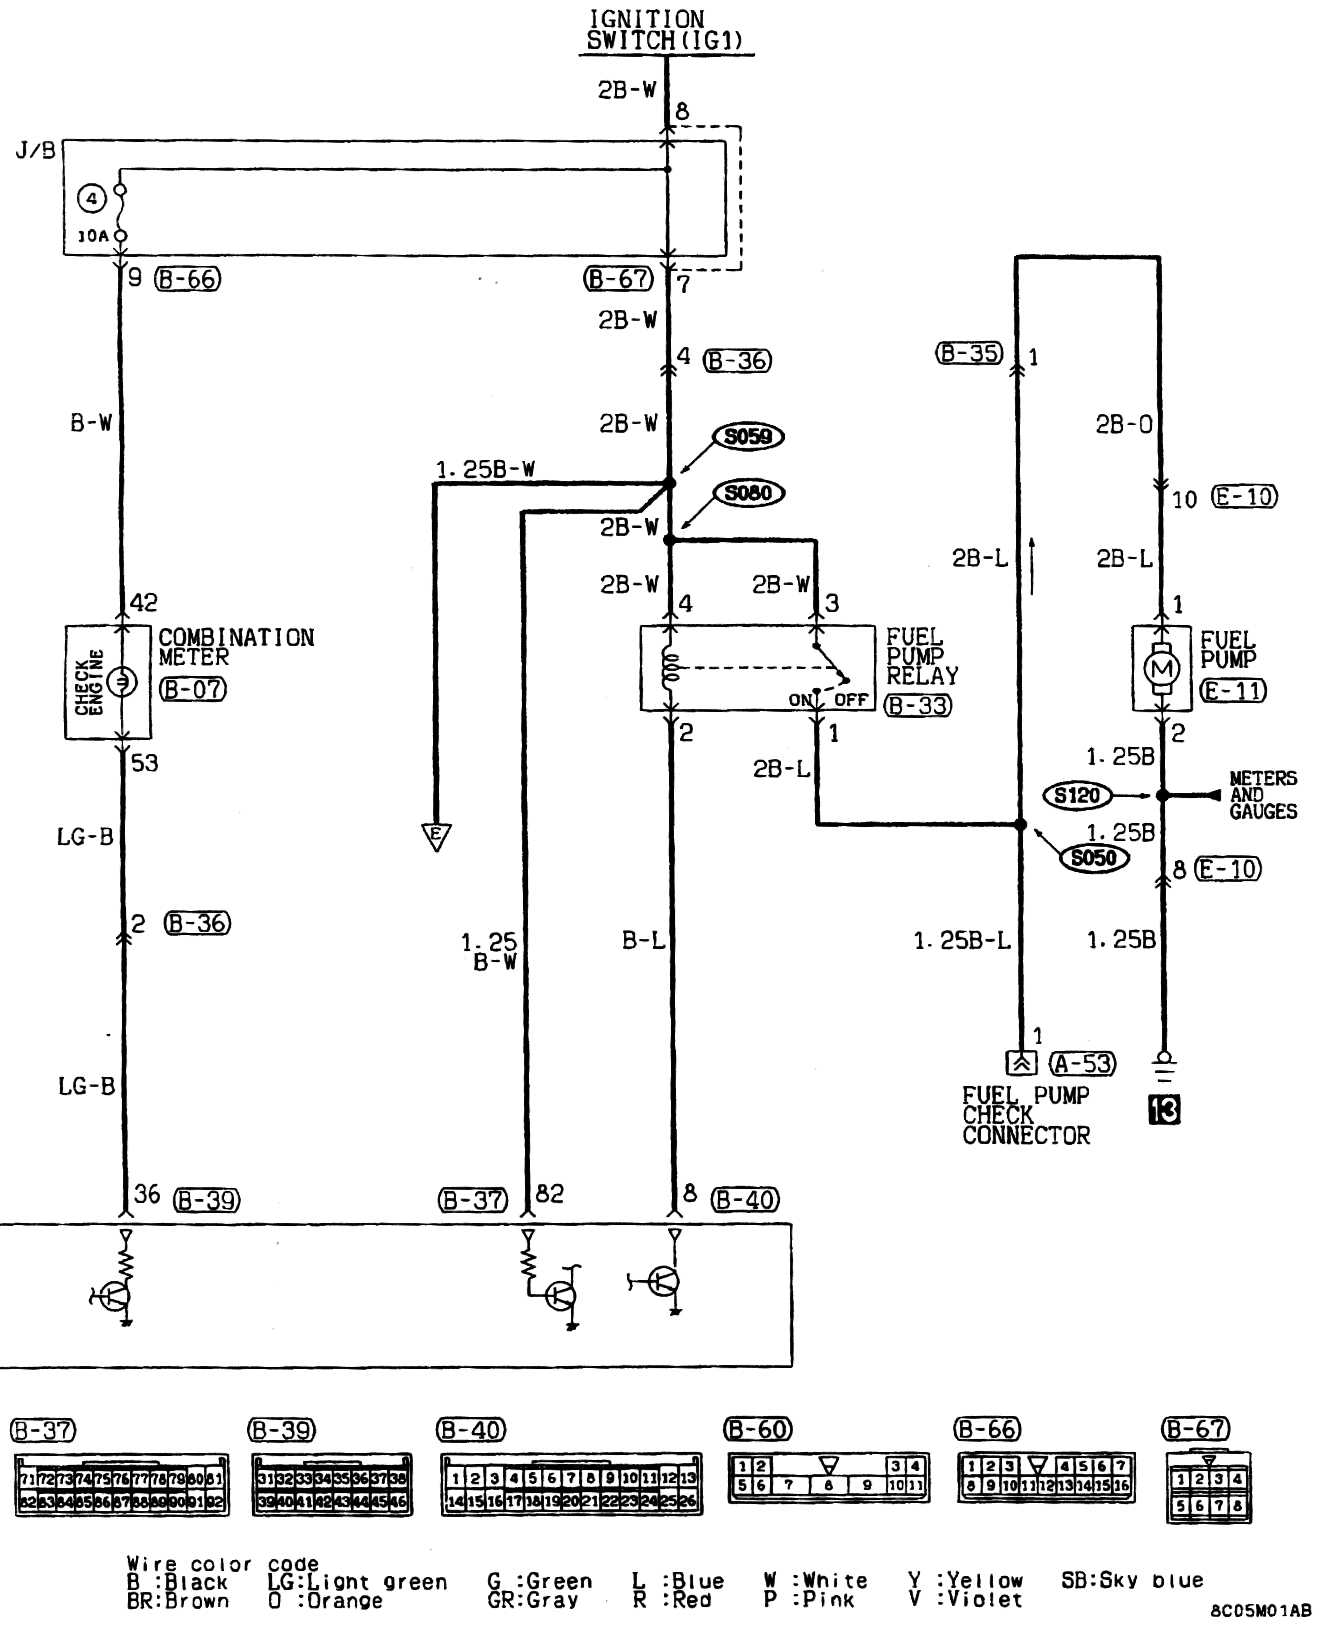 Mitsubishi Mirage Engine Diagram Wiring Libraries 1997 Fuse Box 1998 De Diagrams Scematicfuse